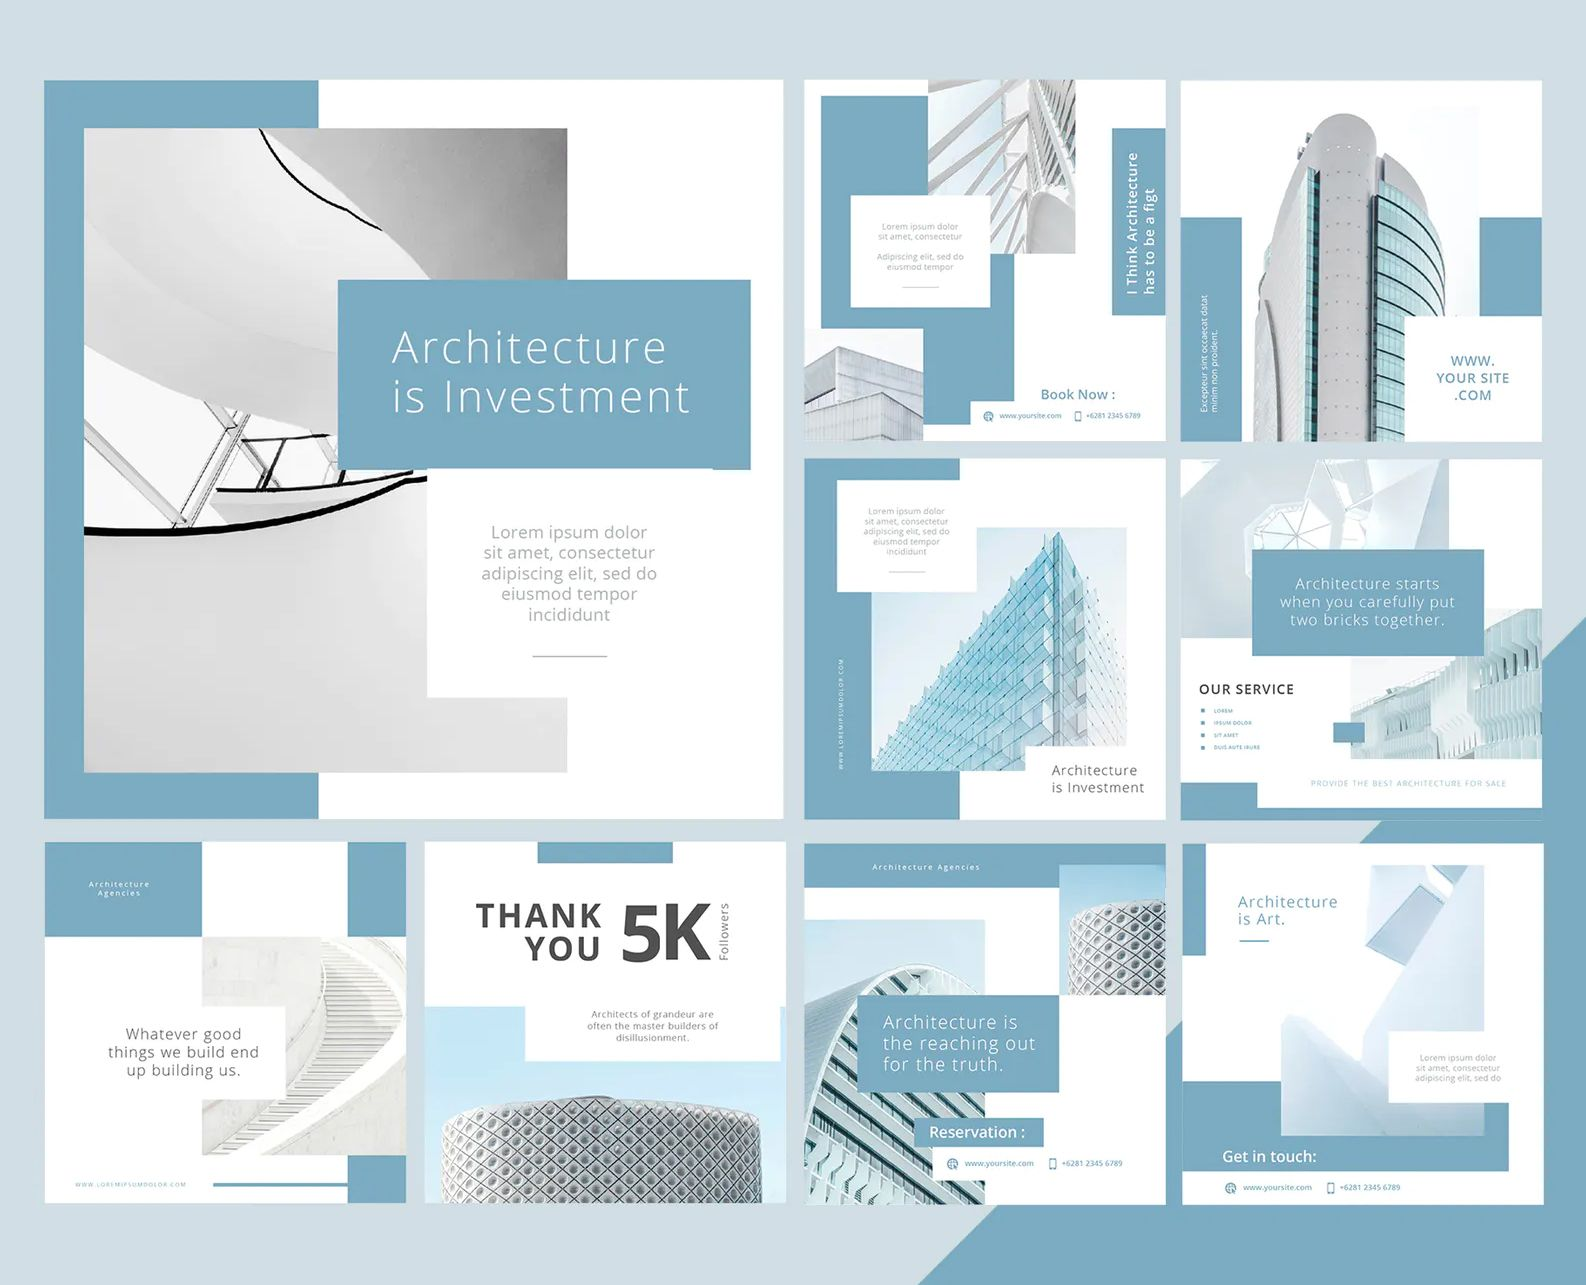 Architecture Social Media Posts Templates Social Media Post Social Media Architecture